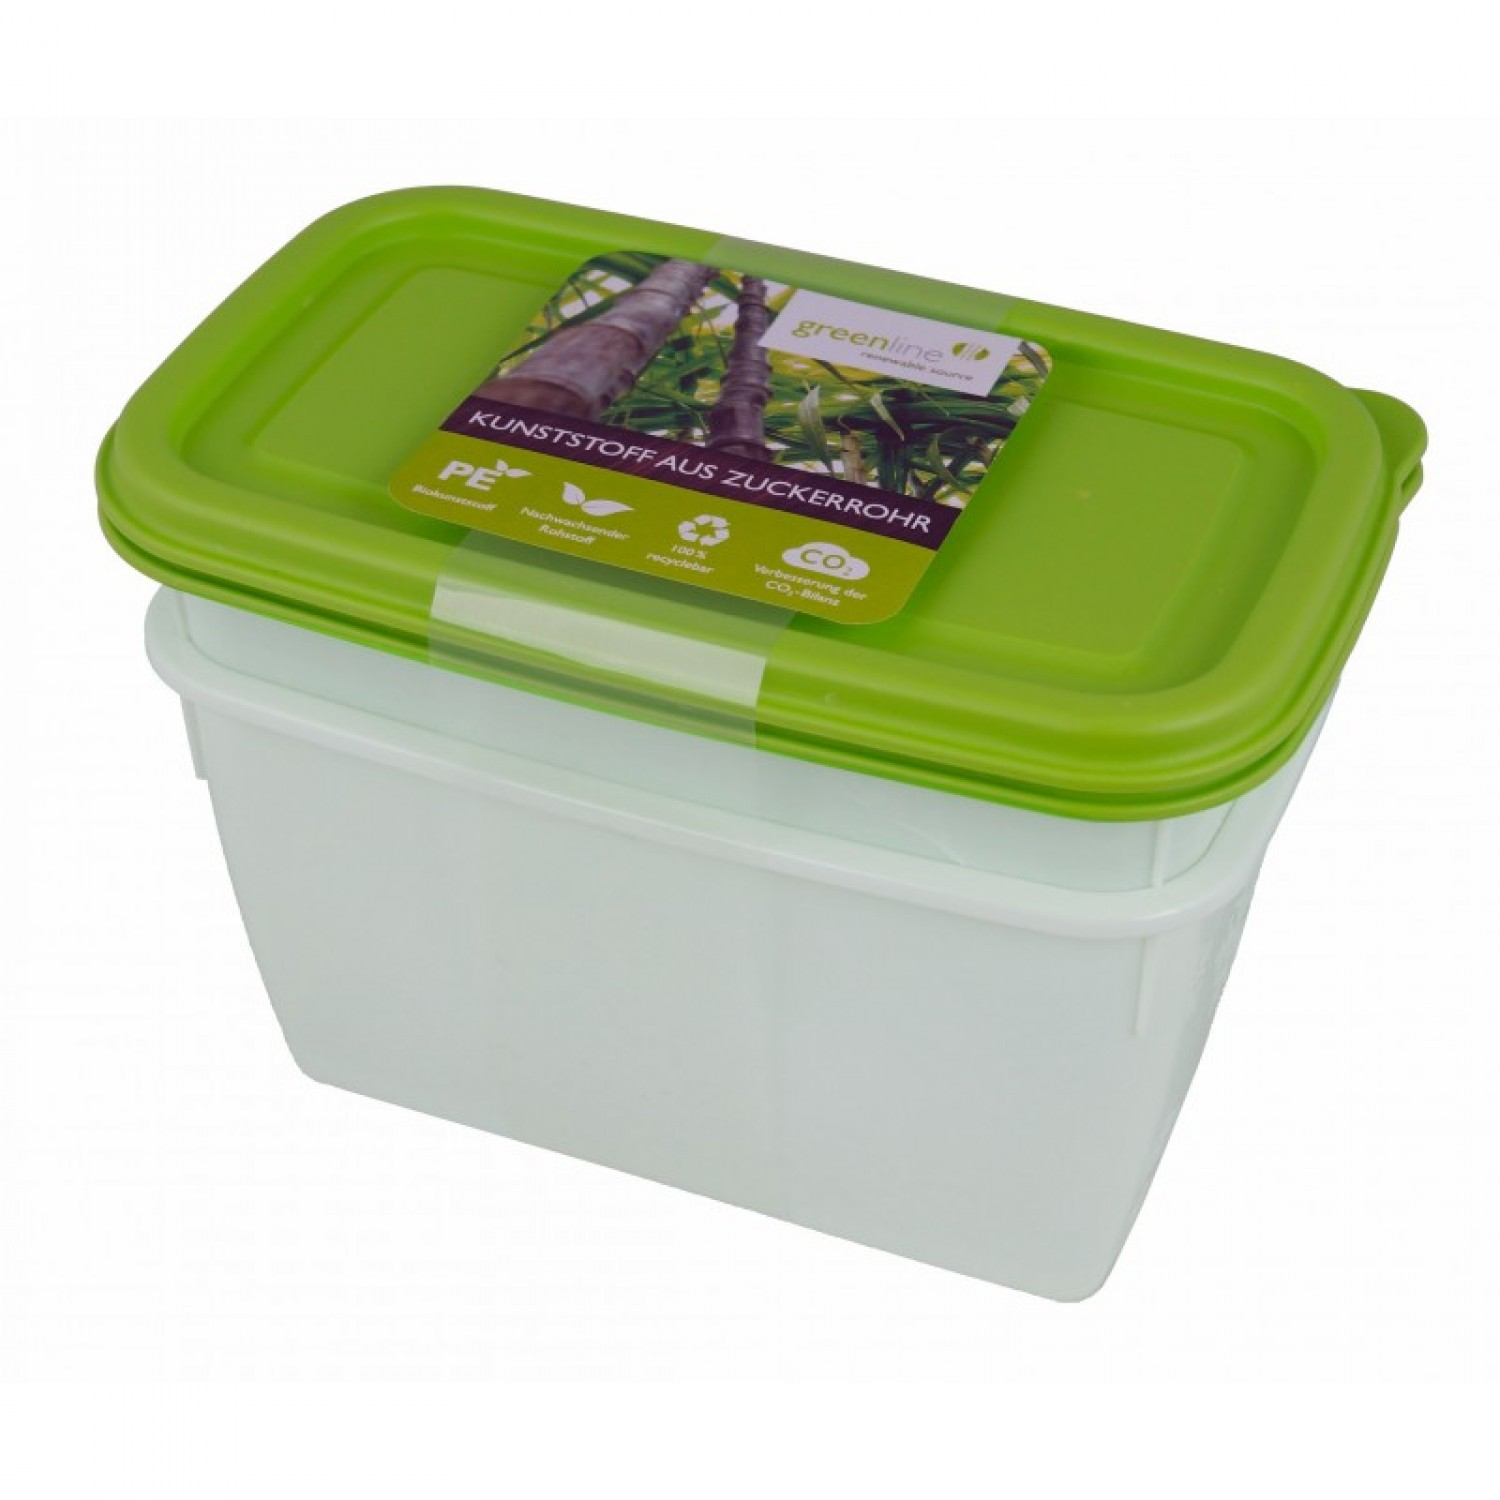 Greenline deep-freeze food container 1 l in 2-part set | Gies